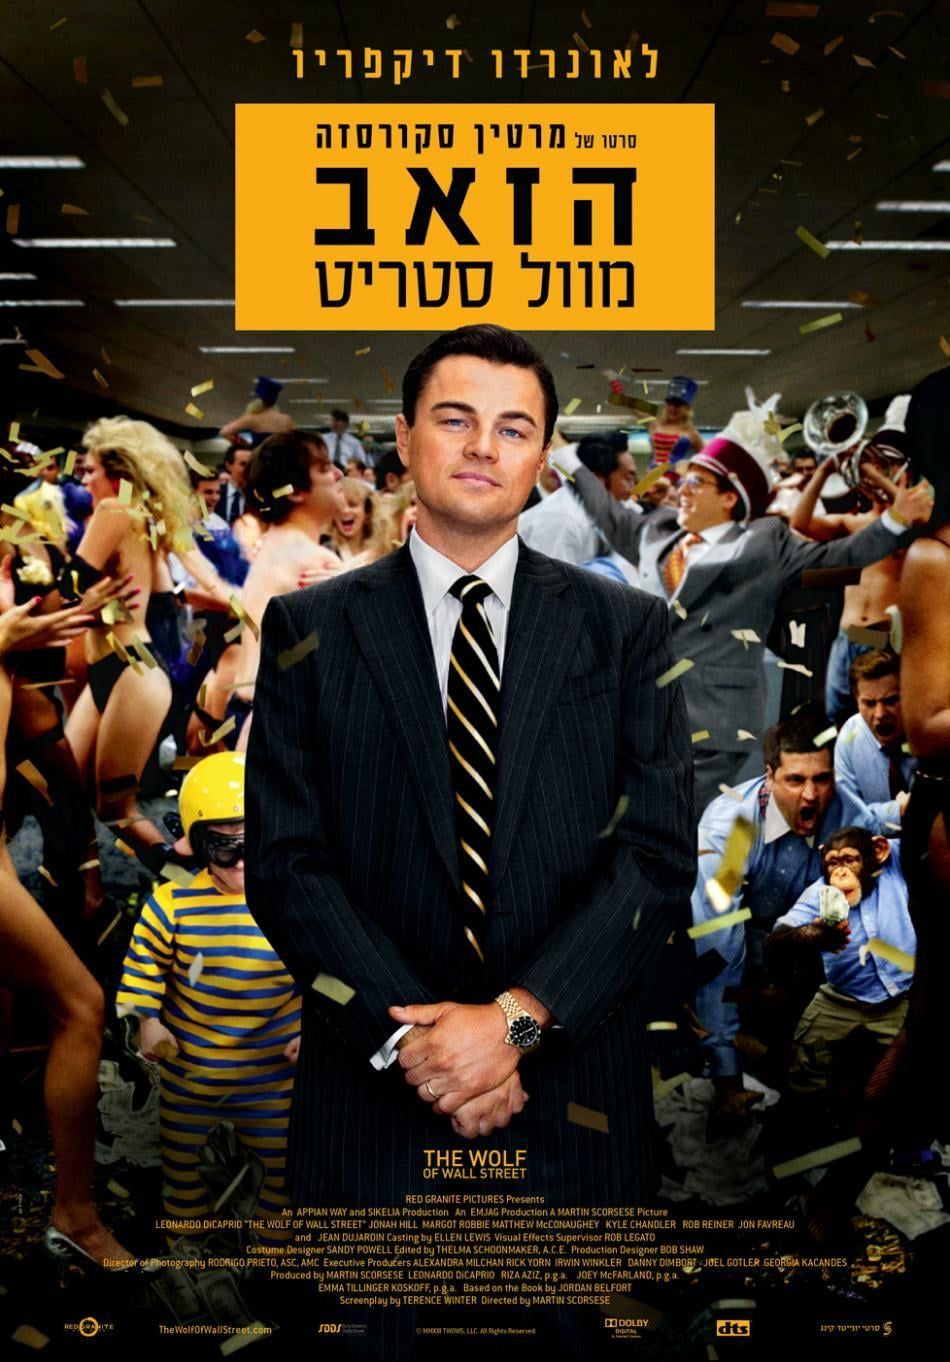 The Wolf Of Wall Street 2013 Complet Telechargements For Free Dinding Jalan Film Bagus Martin Scorsese